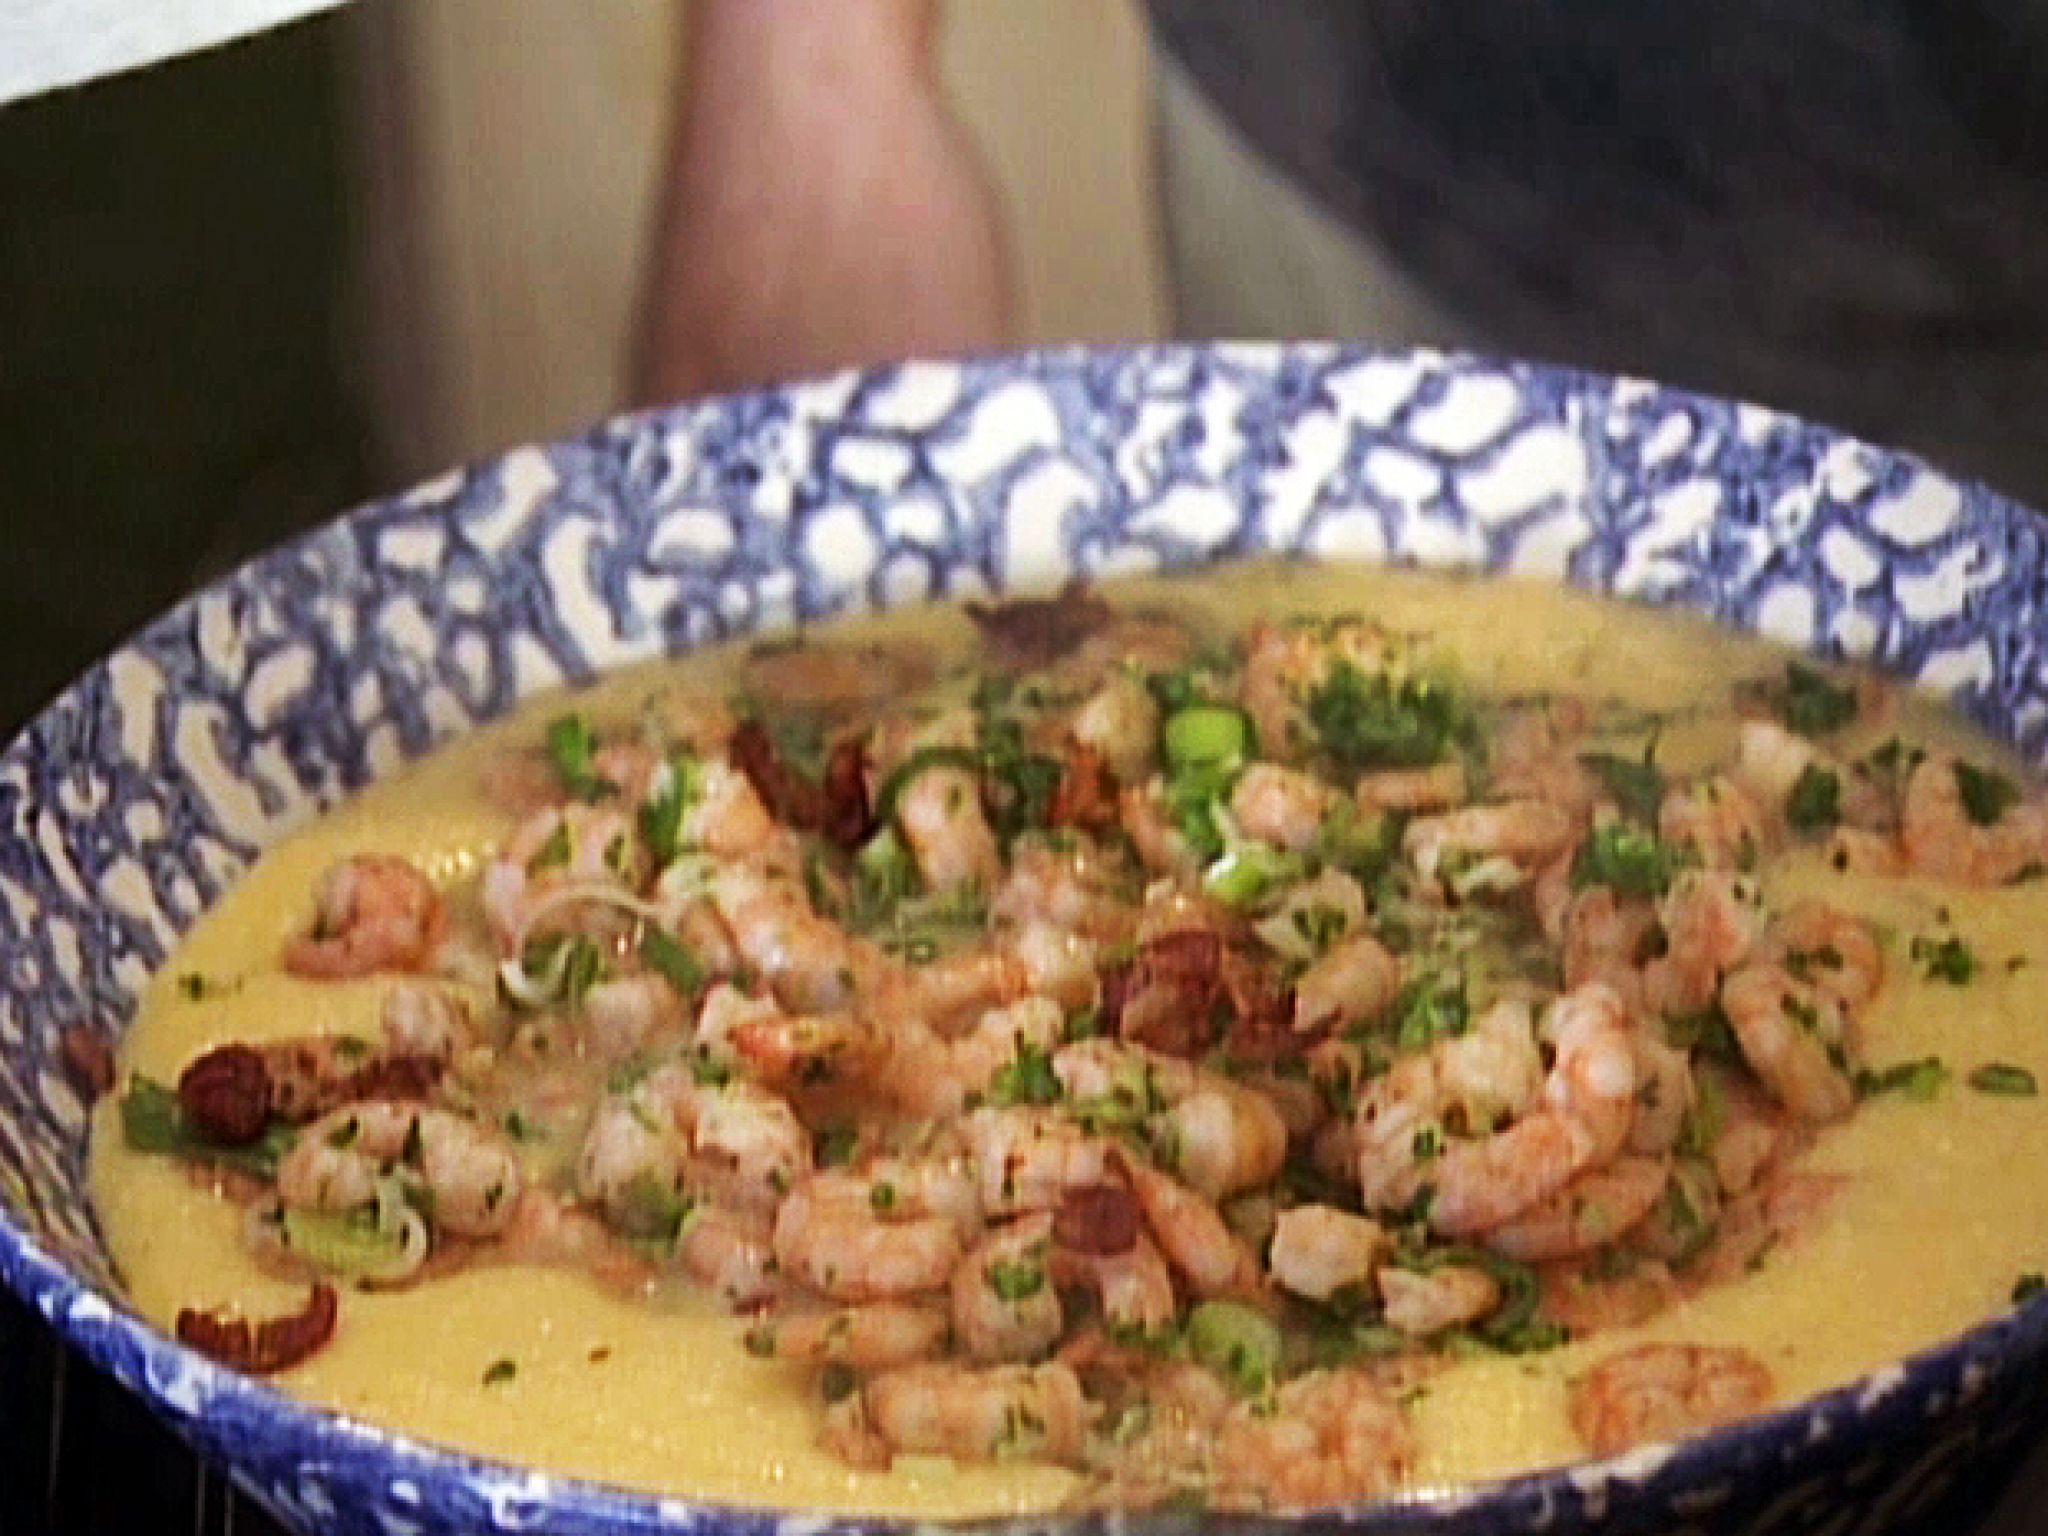 Shrimp and grits recipe recipes foods and entres shrimp and grits forumfinder Gallery